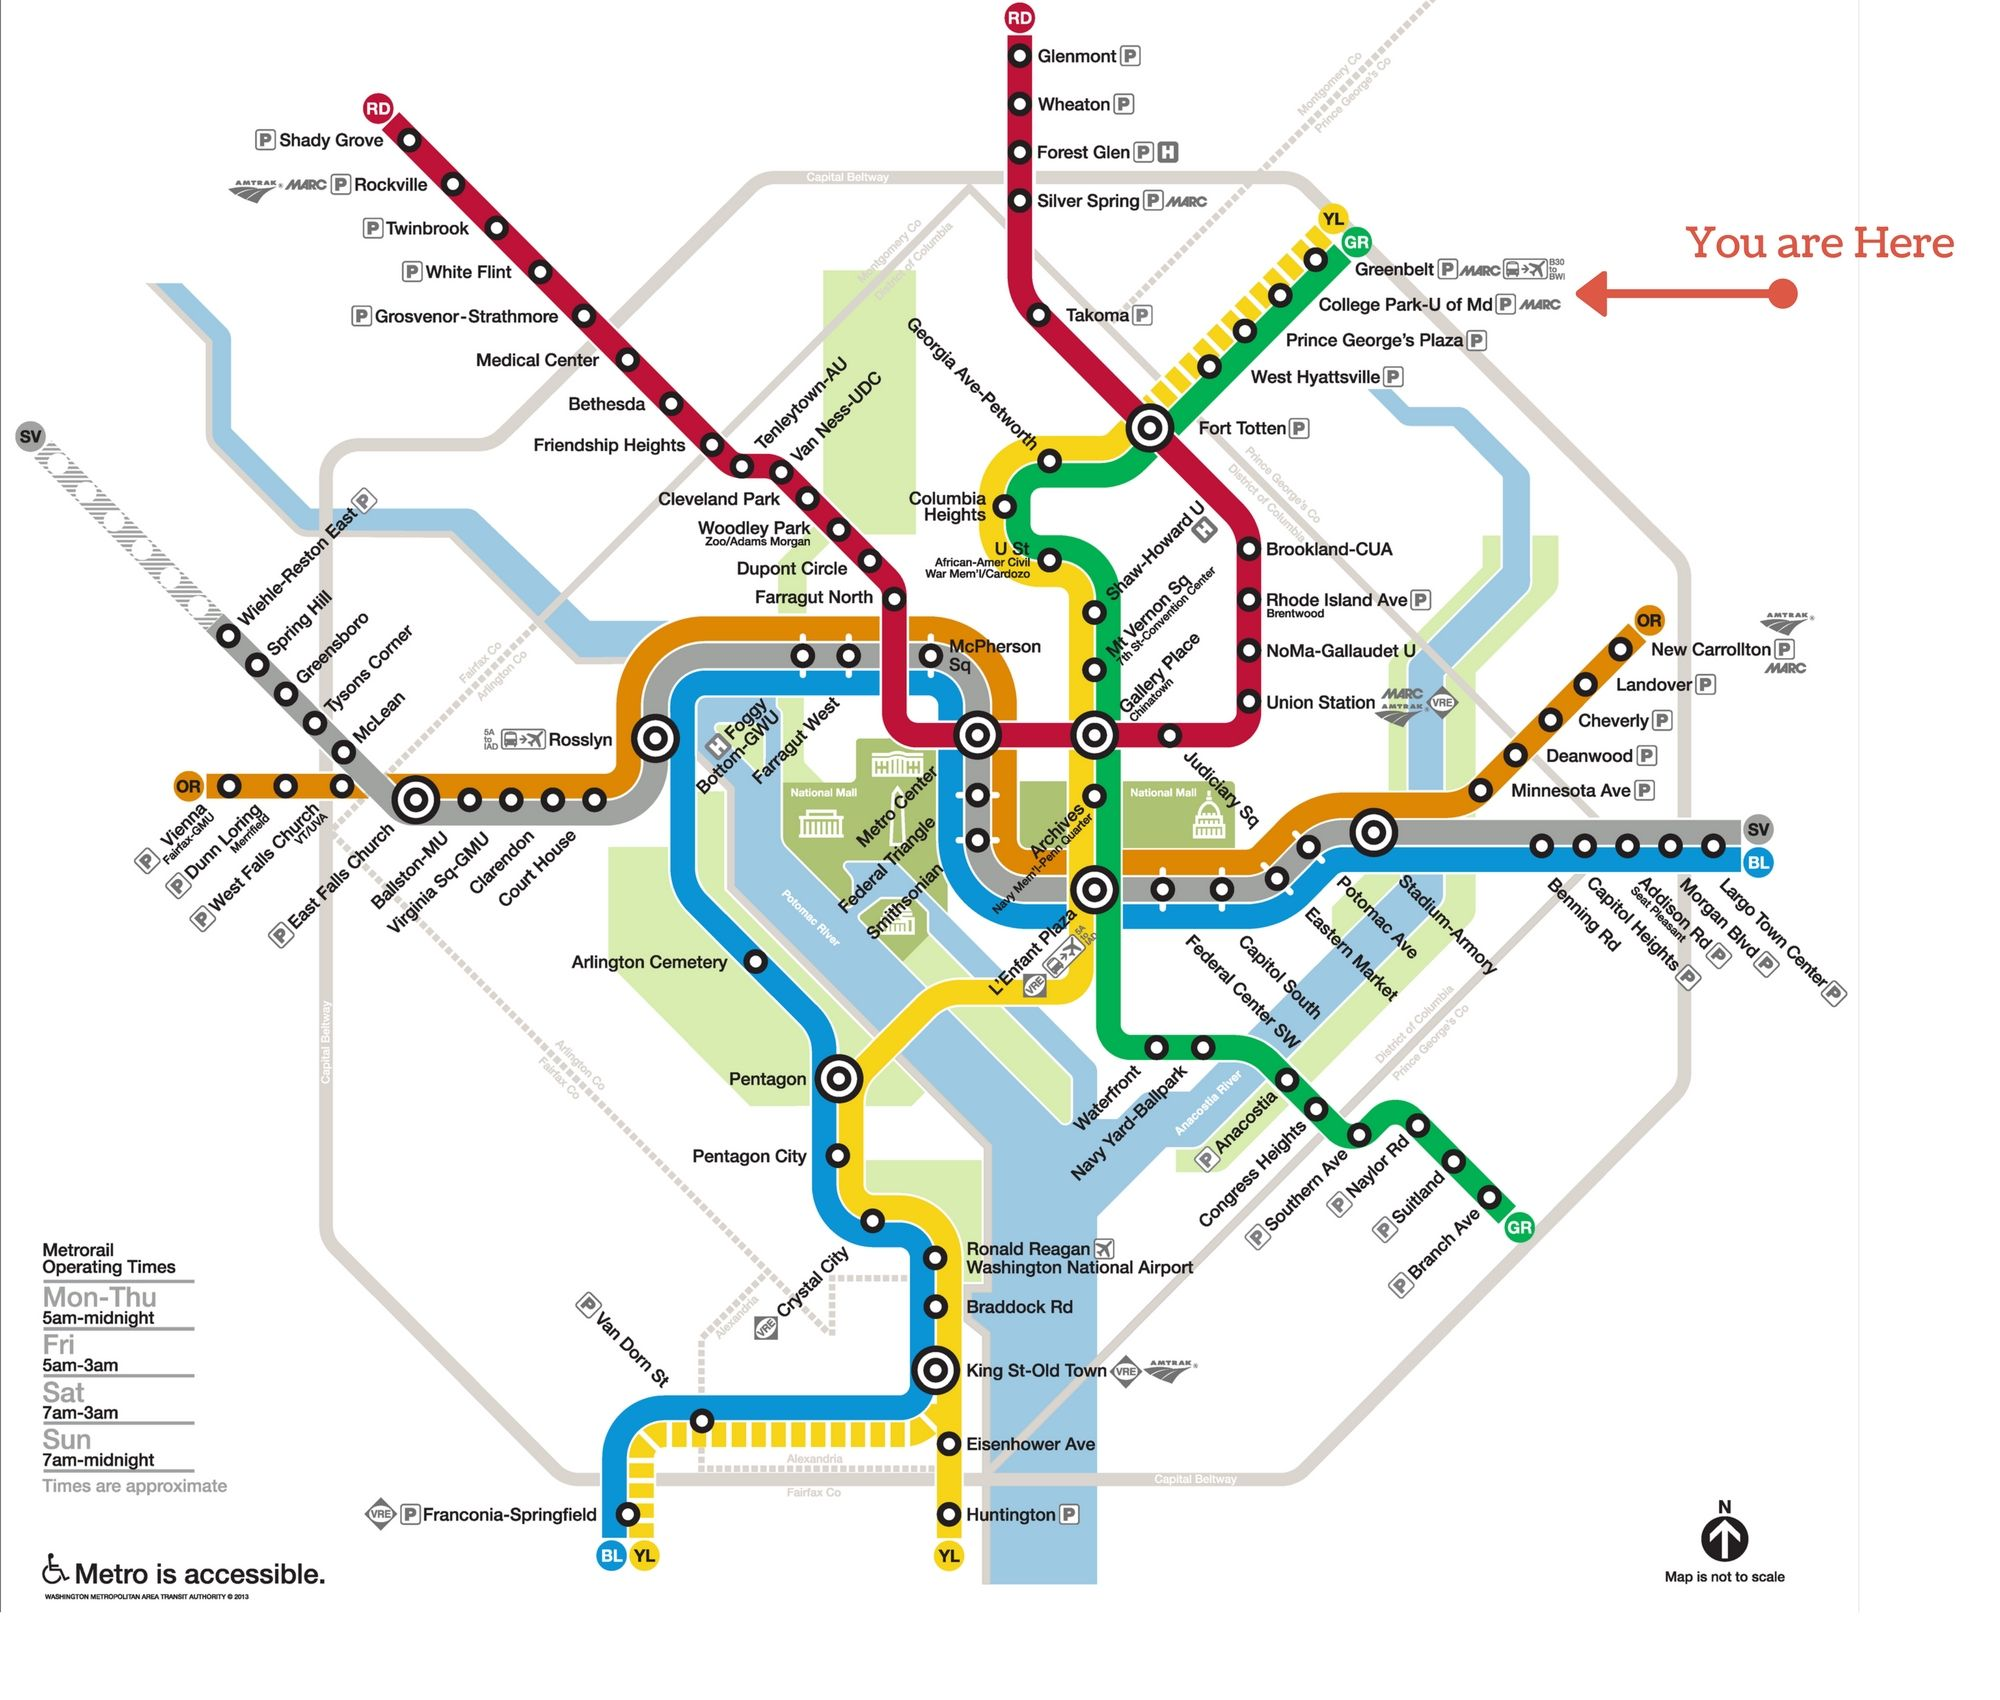 Dc Subway Map Pillow.Washington Dc Metro Map Cherry Hill Park Labeled You Are Here With